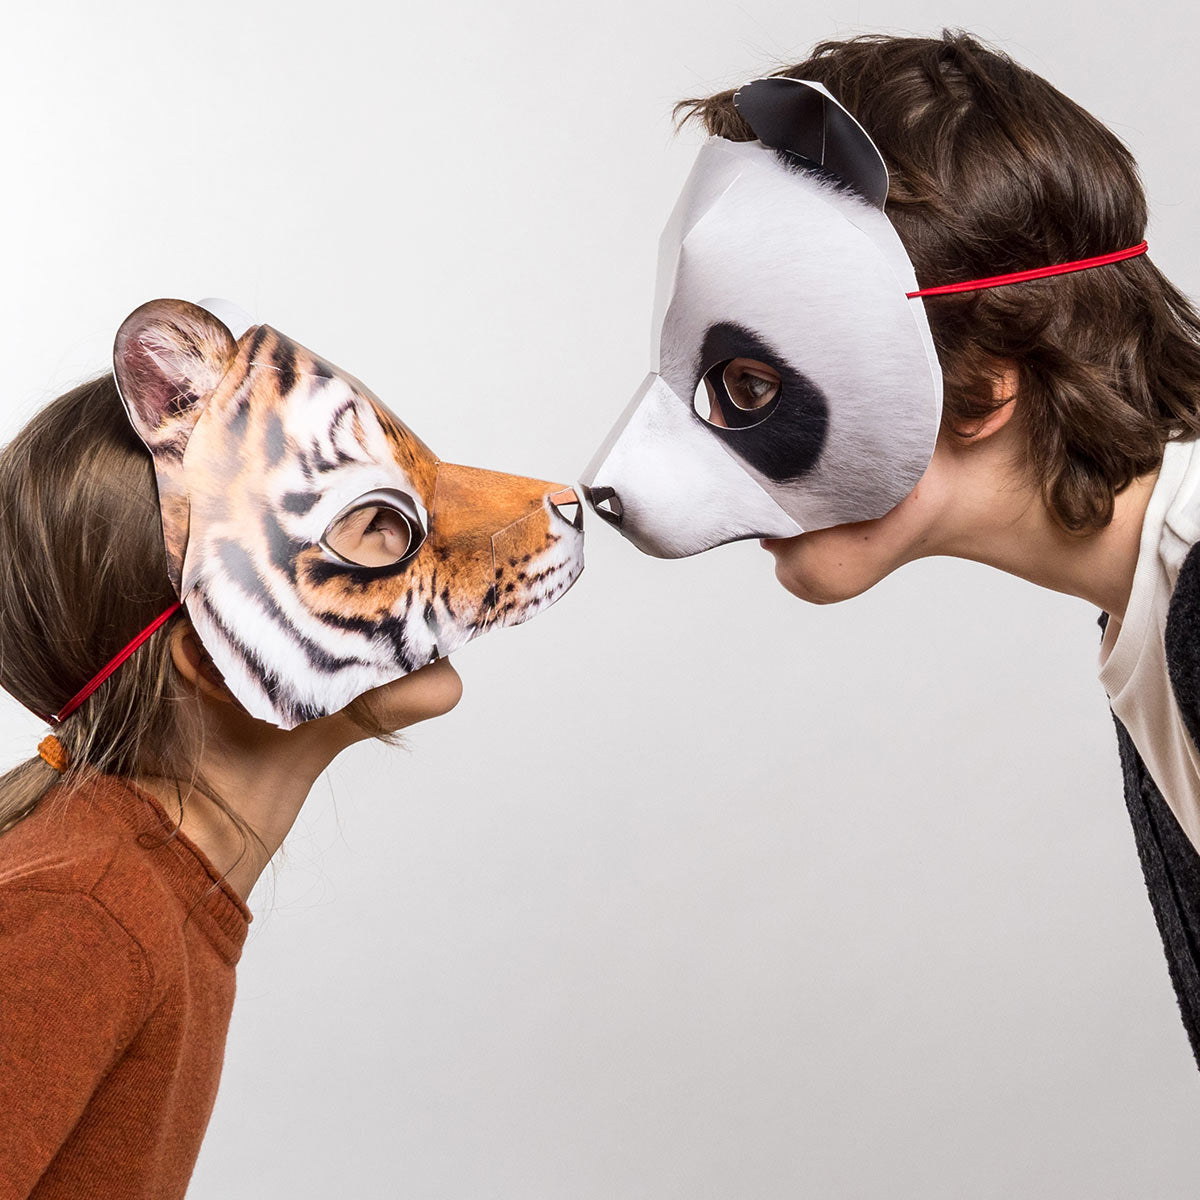 Panda mask – A nose kiss